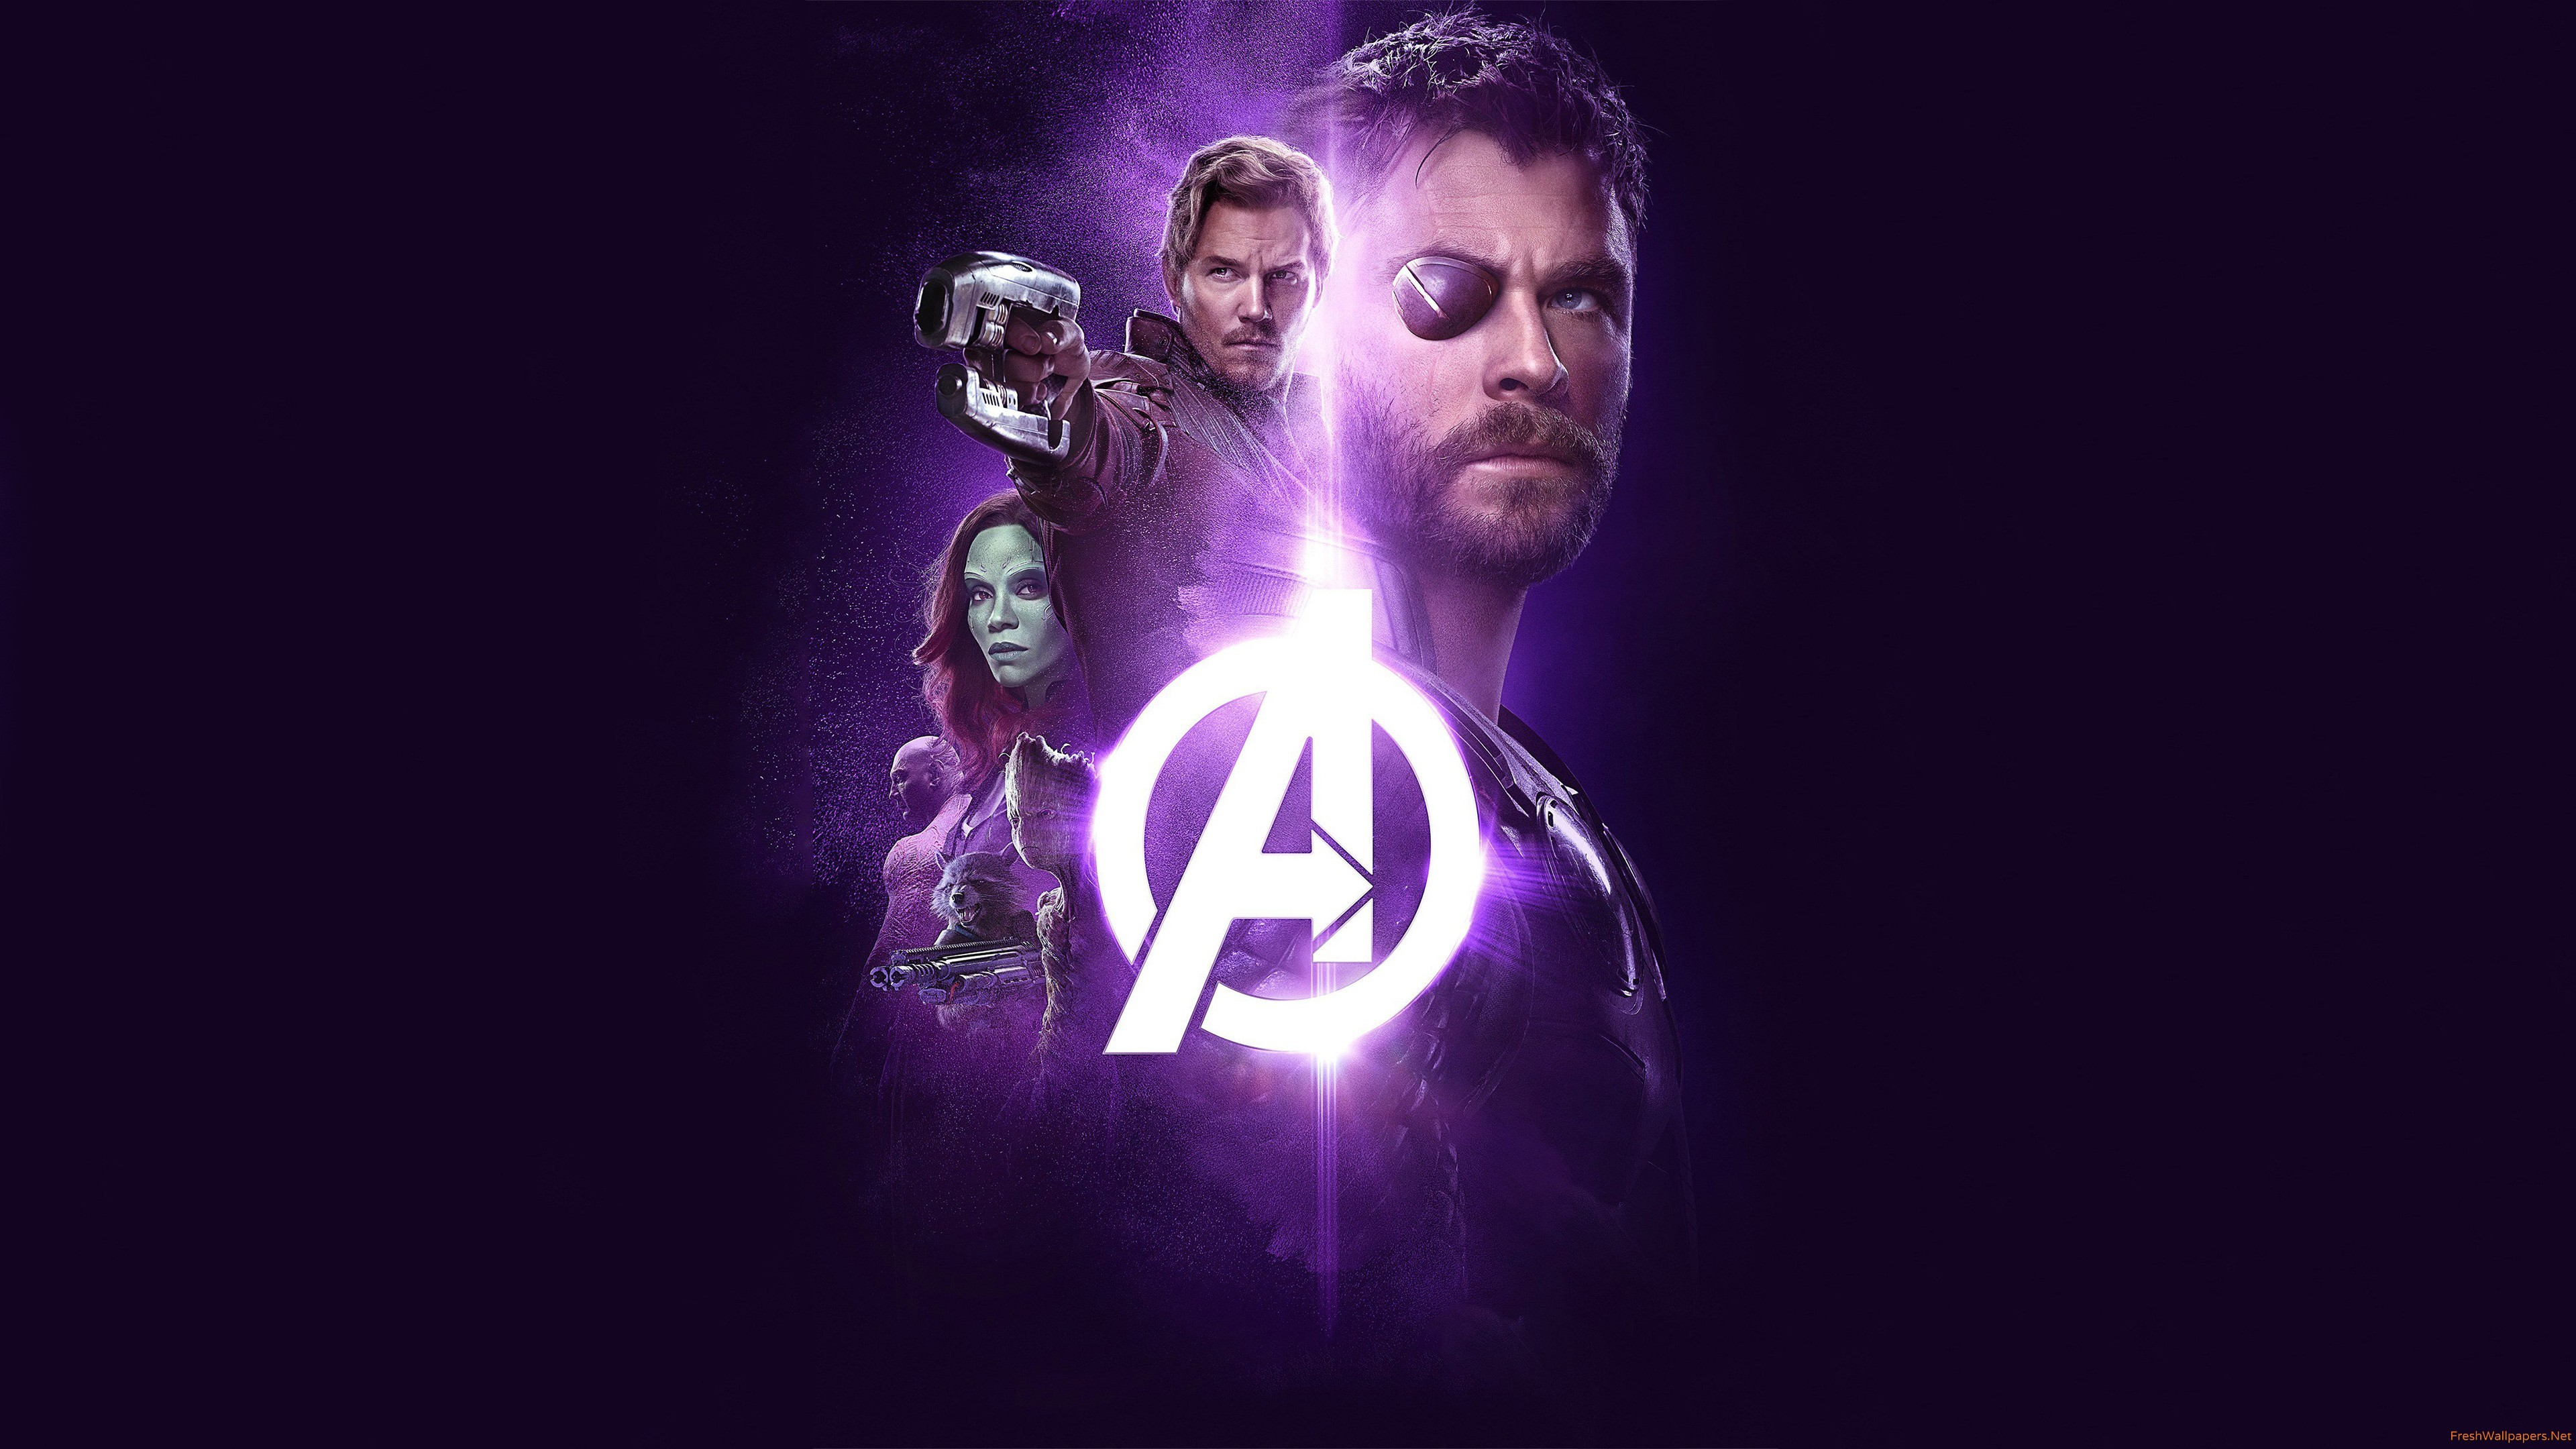 Avengers Infinity War Thor Groot Rocket Star Lord Gamora 4K wallpaper